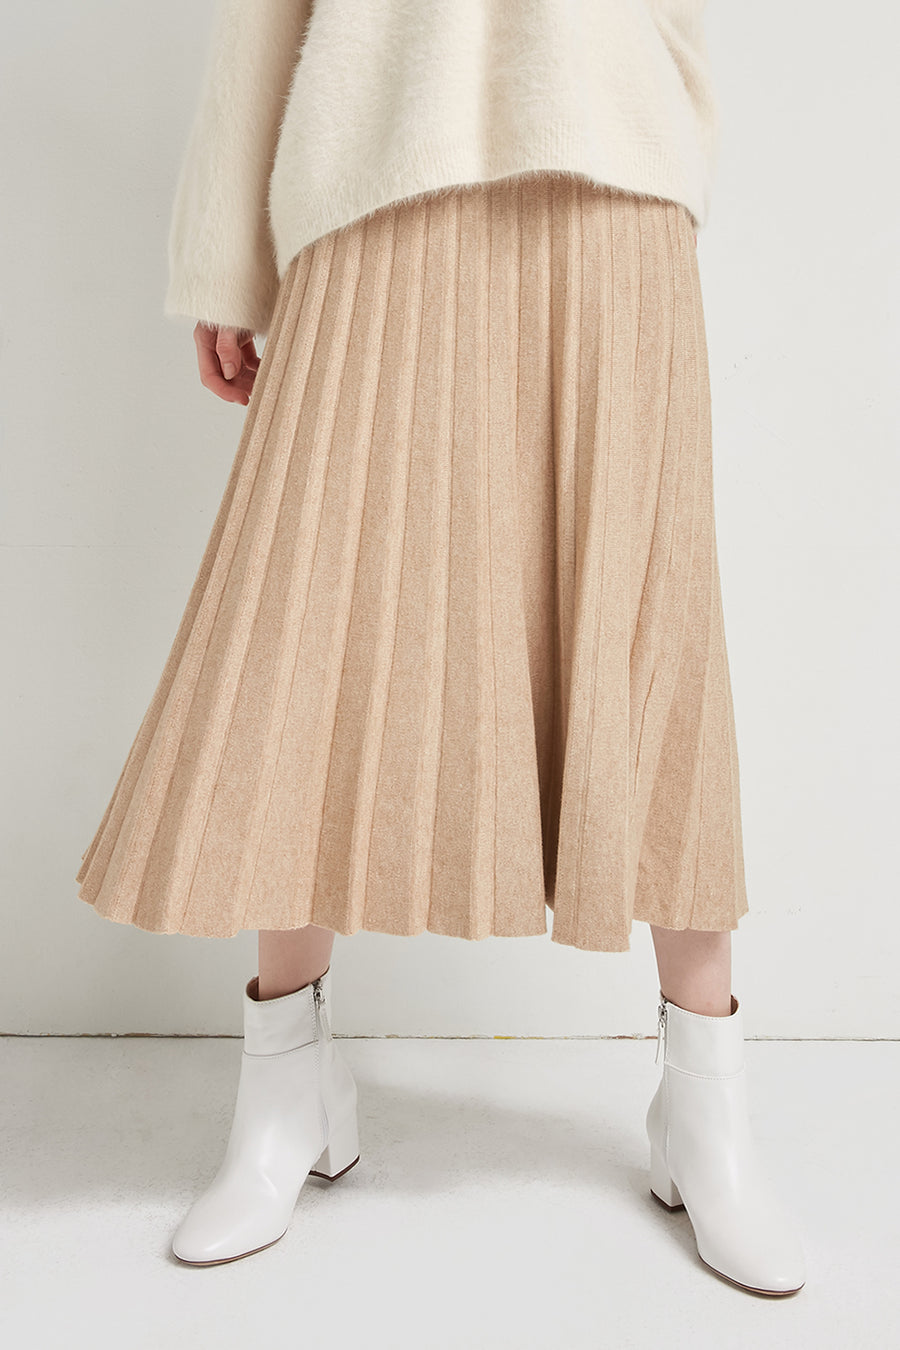 Wool and cotton-blend knitted skirt